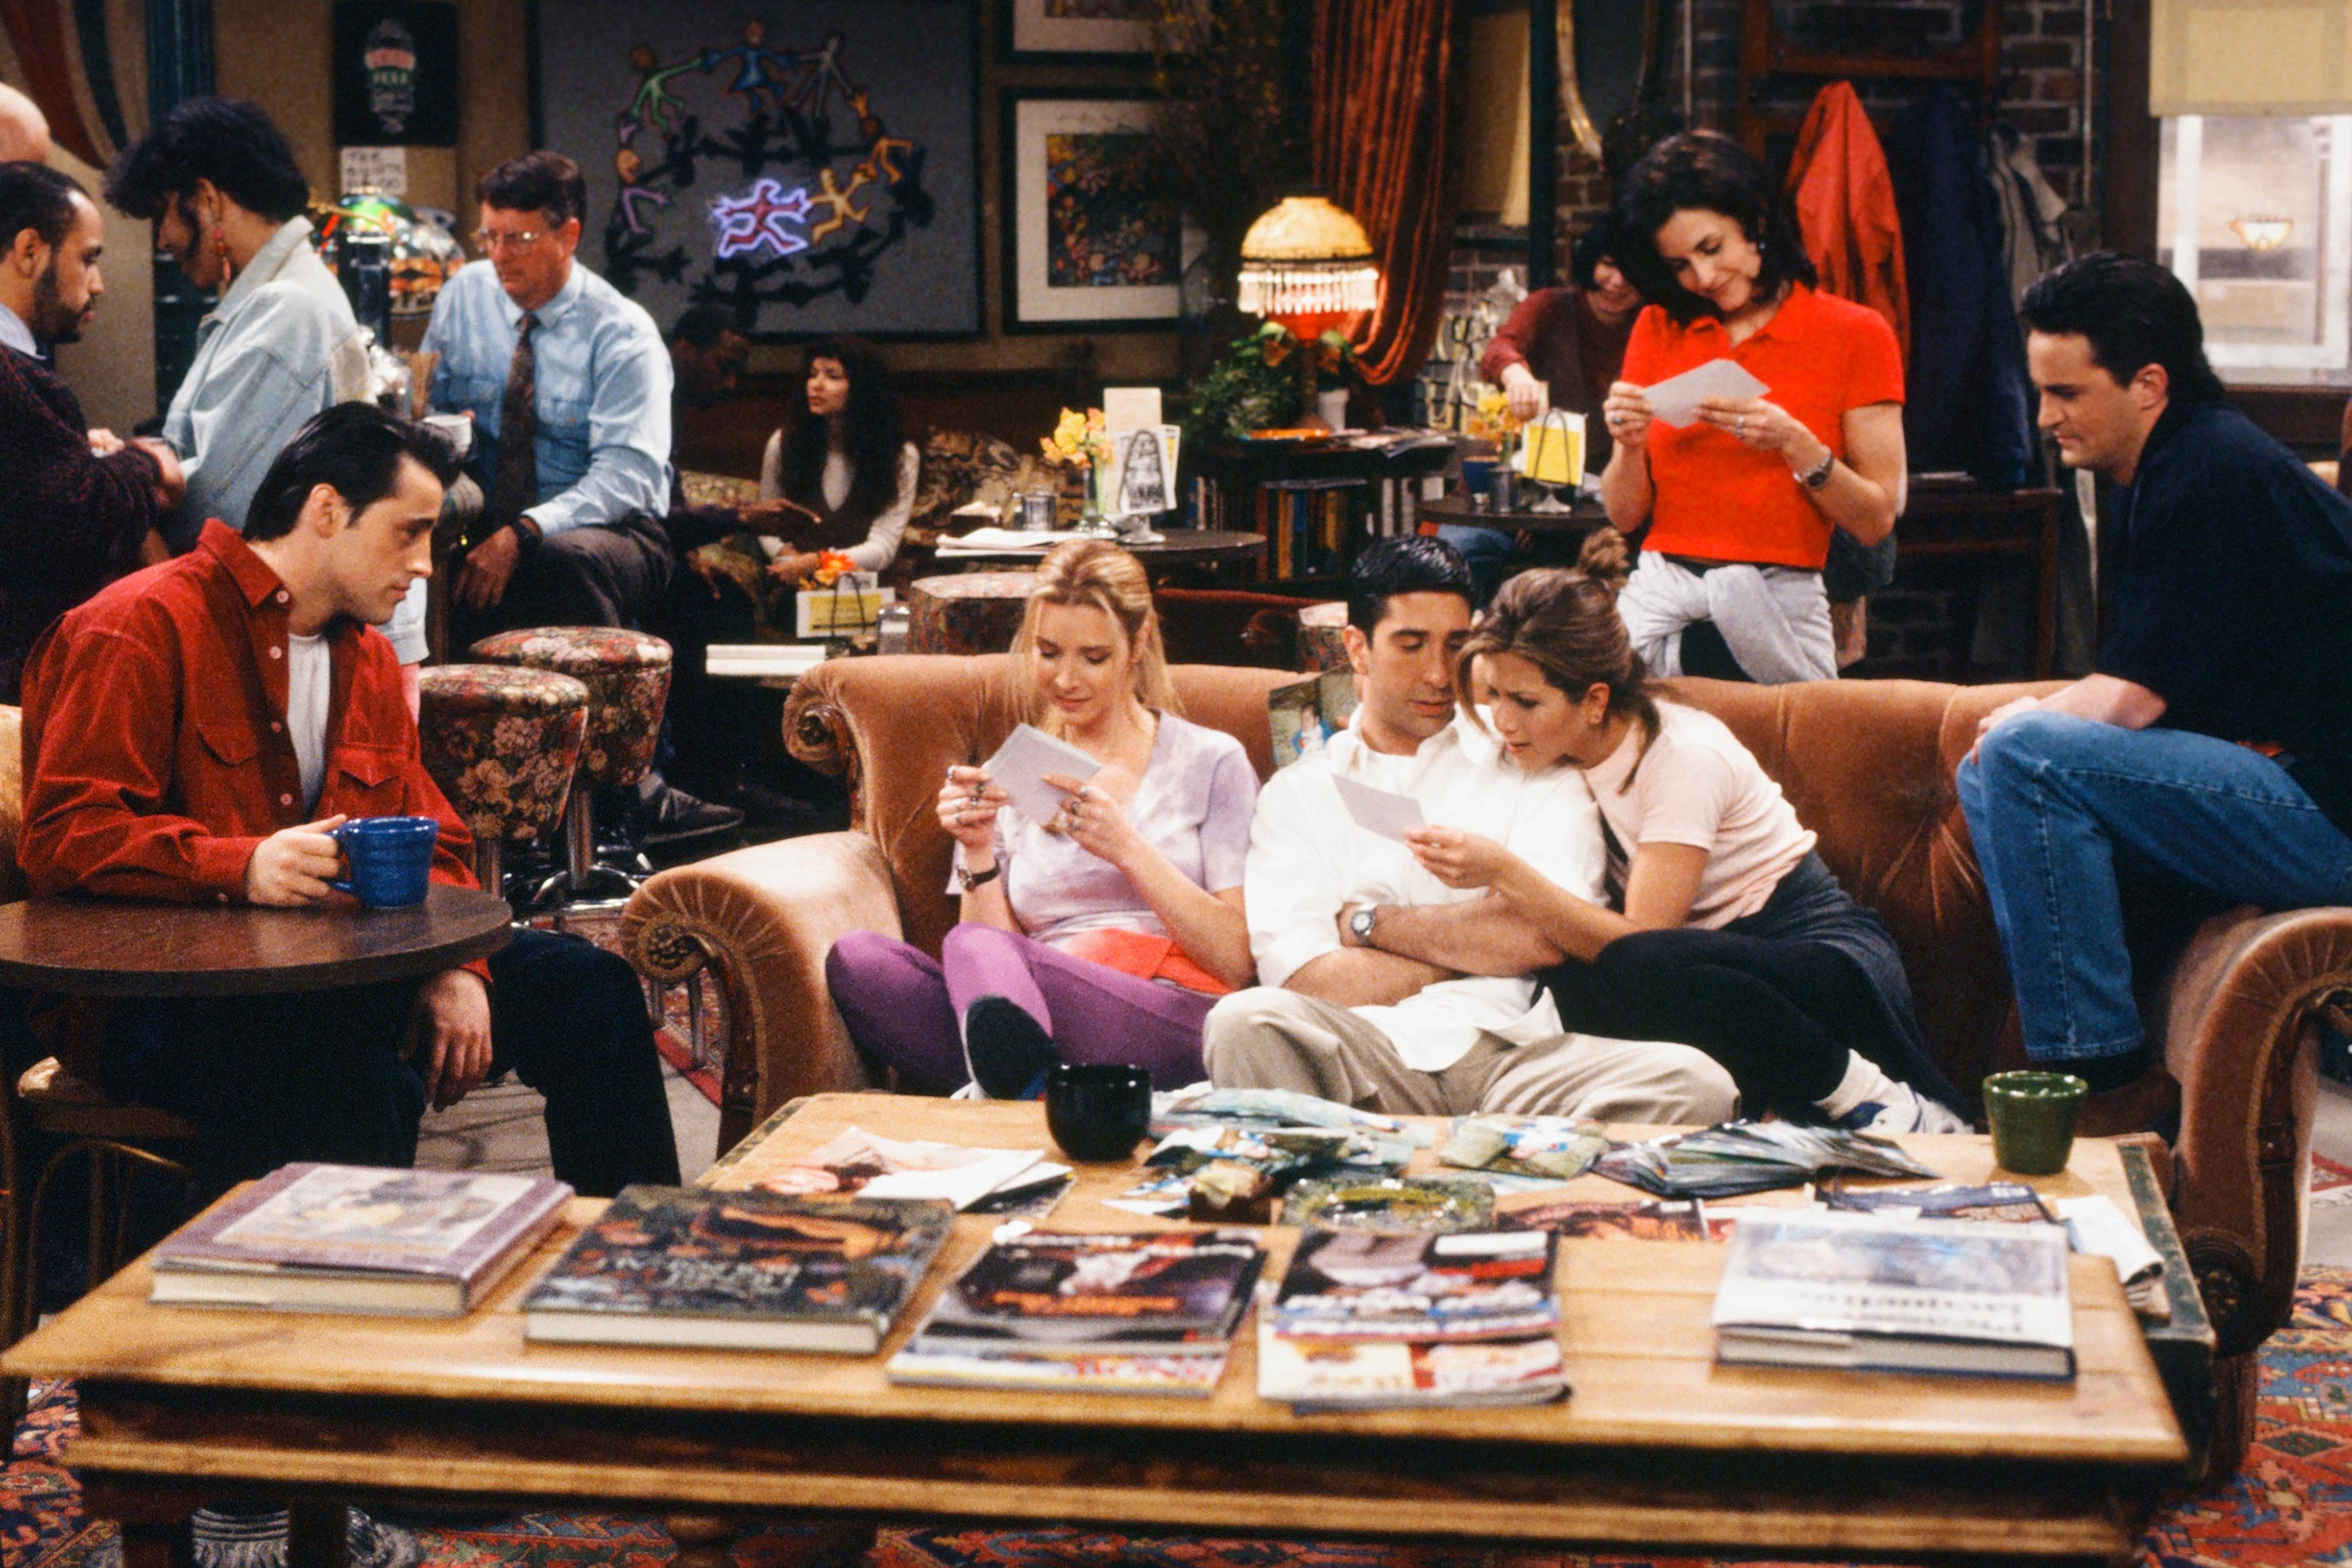 Friends coffee shop Central Perk may become real